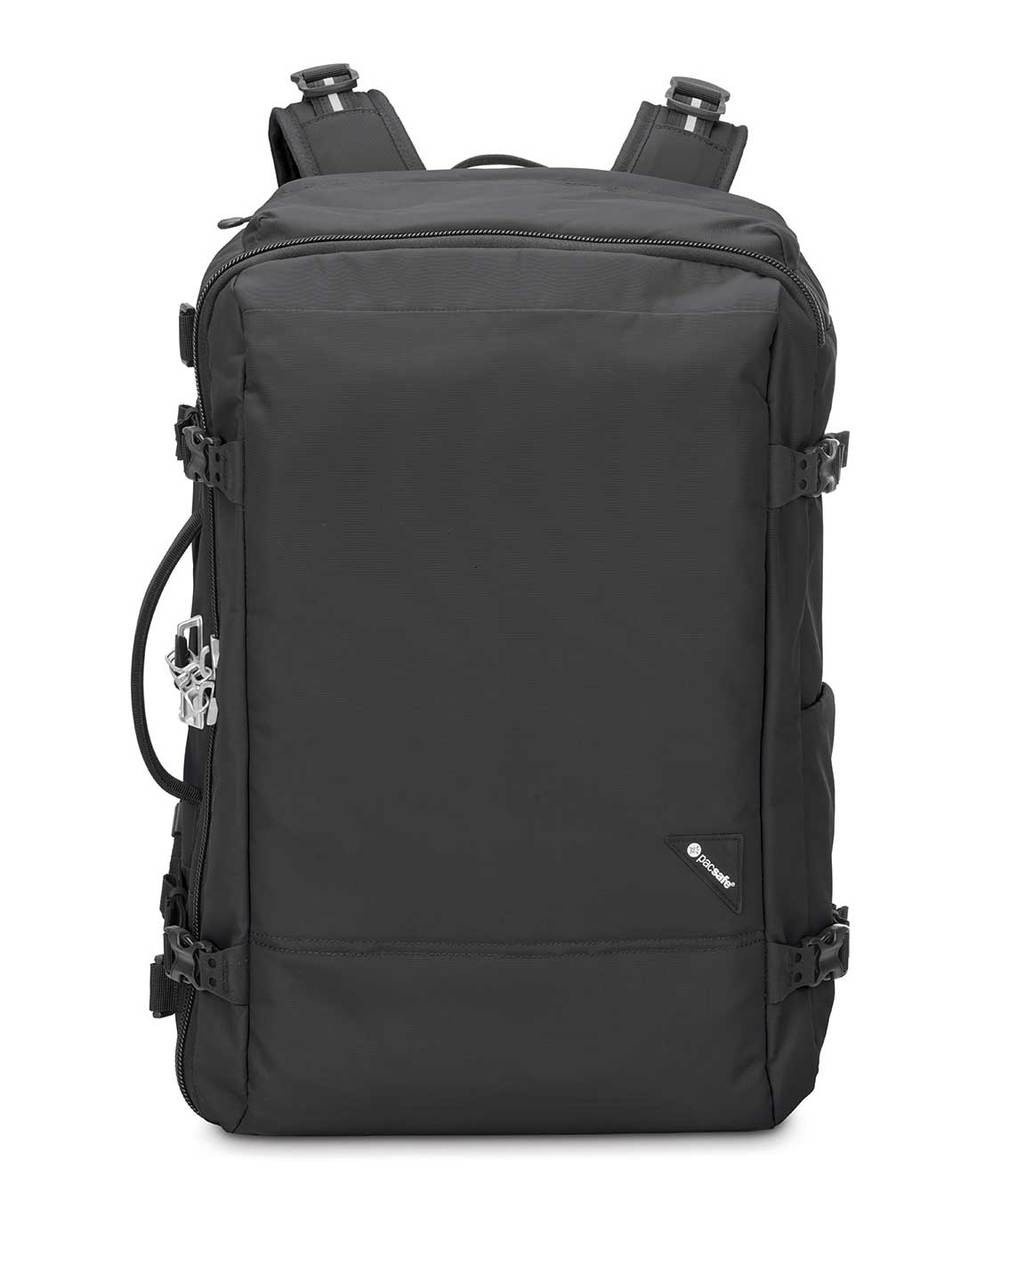 231a347aedb5 Pacsafe Vibe 40 anti theft backpack at travelgear.com.au